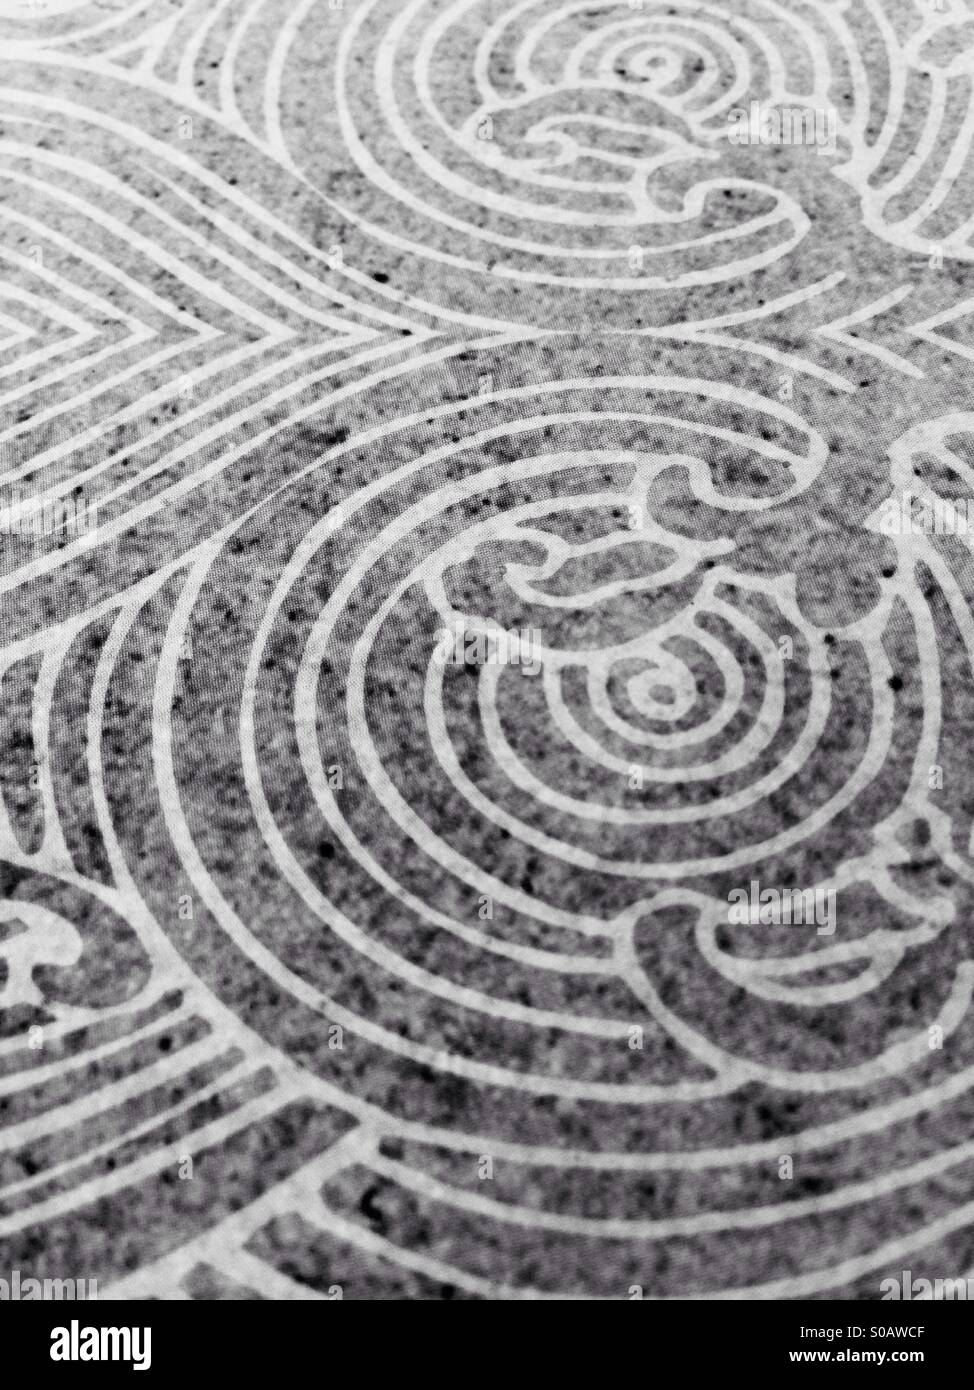 Mazes-motives draws and convert to black and white. - Stock Image